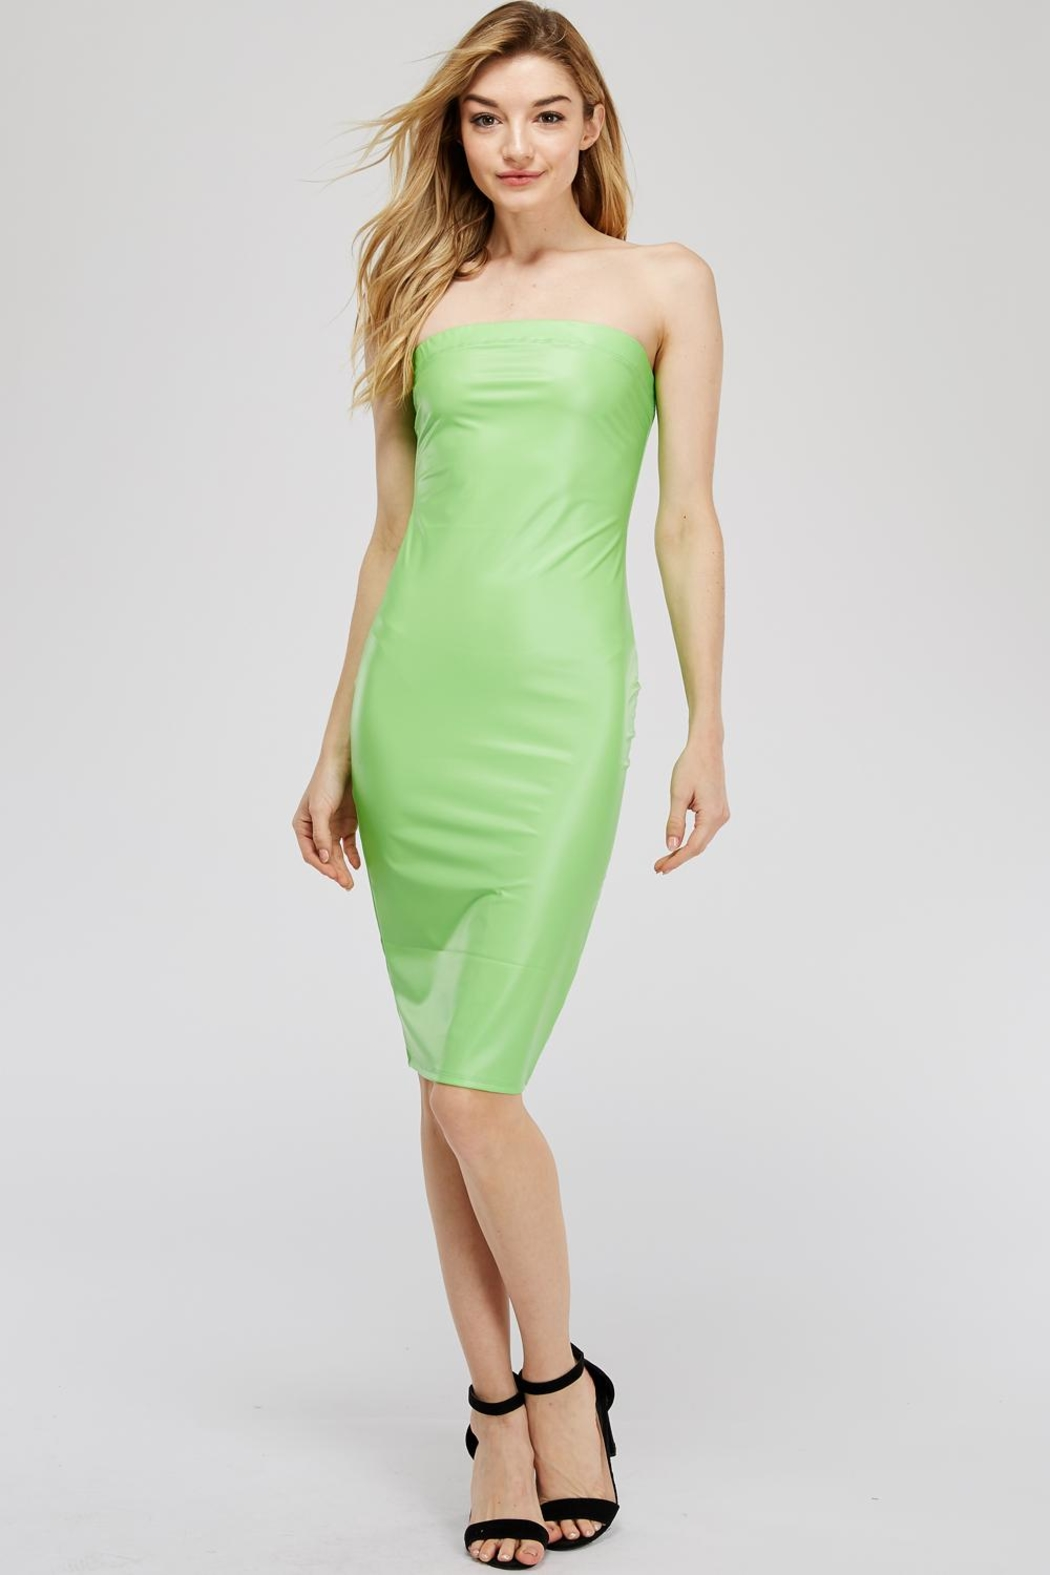 K too Pu Tube Dress - Front Cropped Image